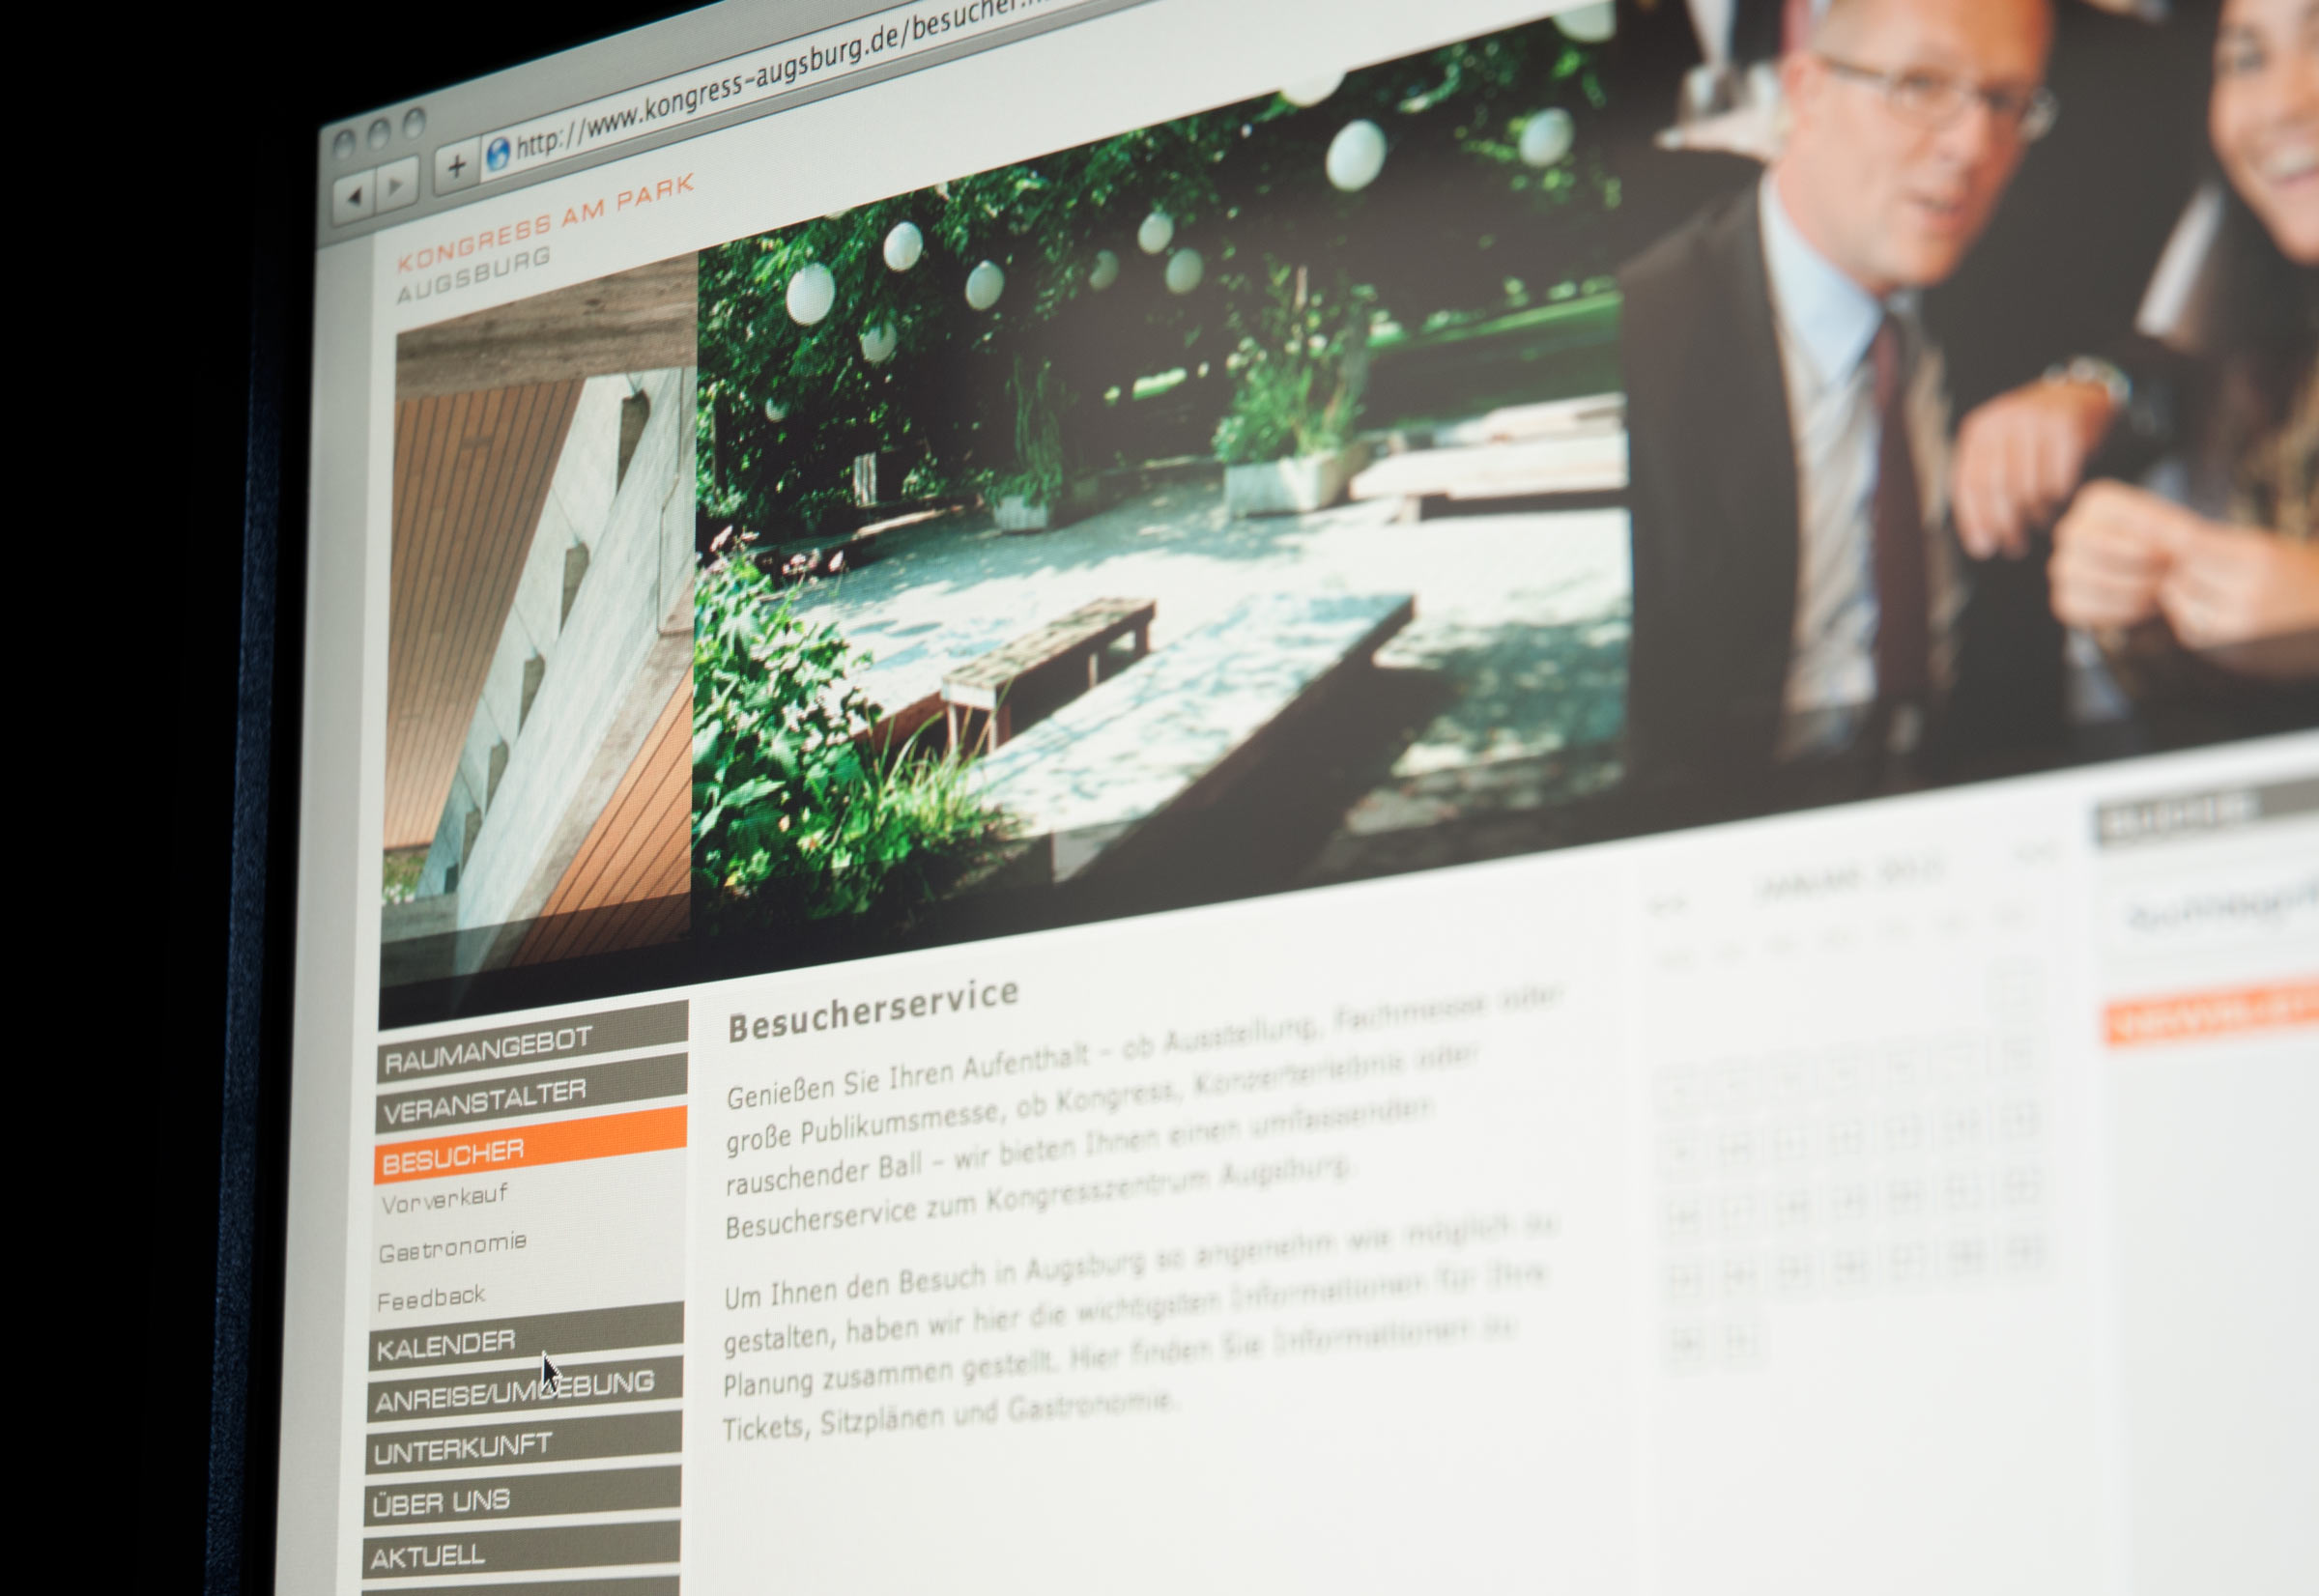 Website Kongress am Park